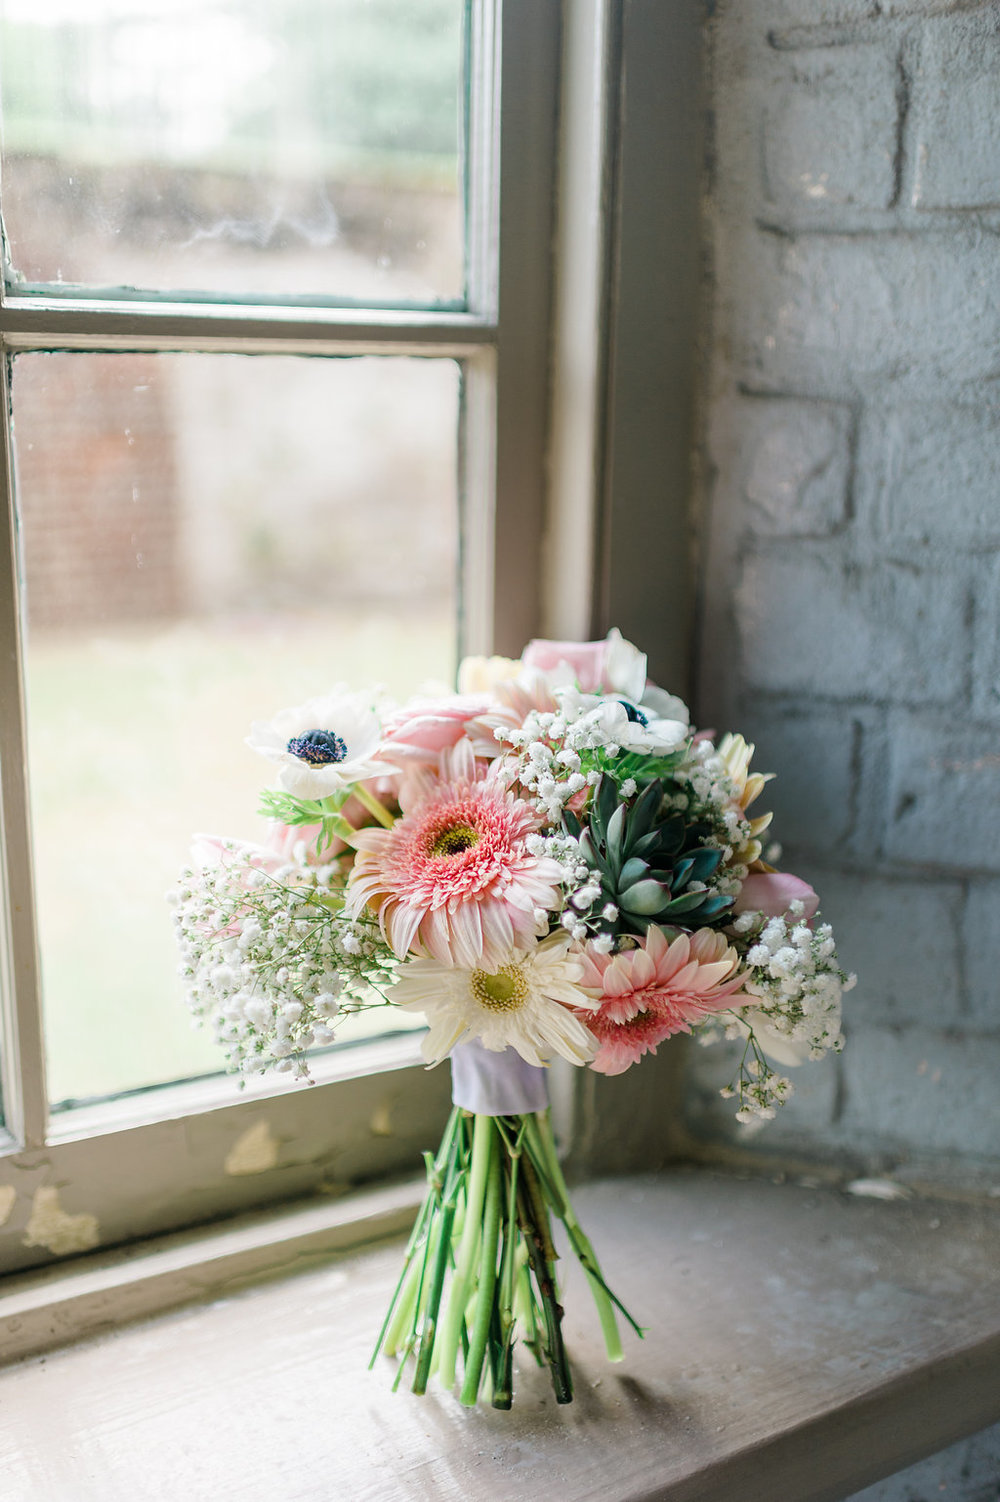 rach-lea-photography-rach-loves-troy-roundhouse-railroad-museum-wedding-ivory-and-beau-savannah-wedding-planner-savannah-weddings-savannah-florist-ivory-and-beau-bridal-boutique-succulent-blush-wedding-1.jpg